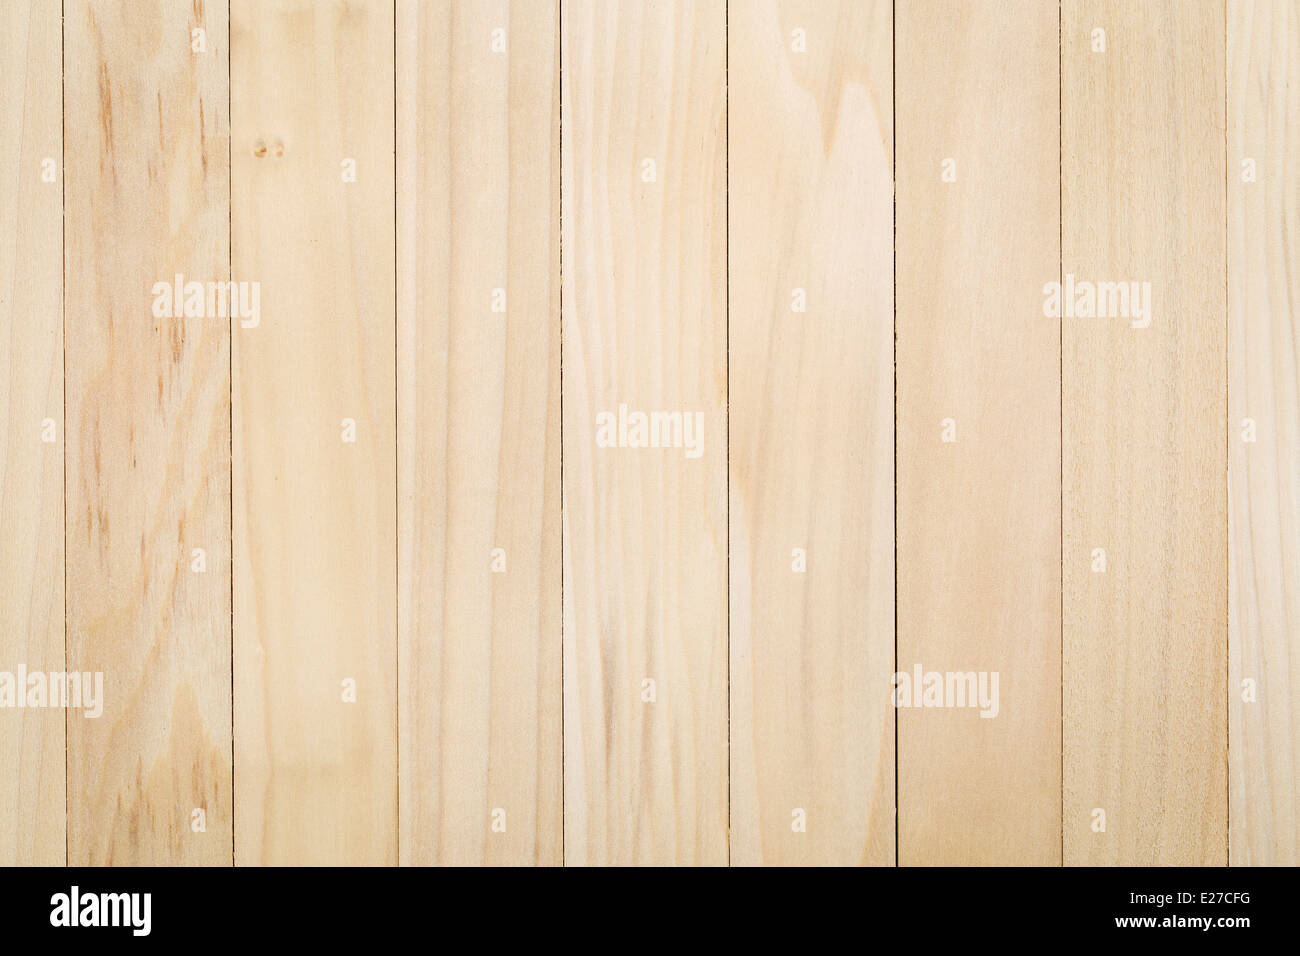 unfinished poplar wood texture - vertical narrow planks